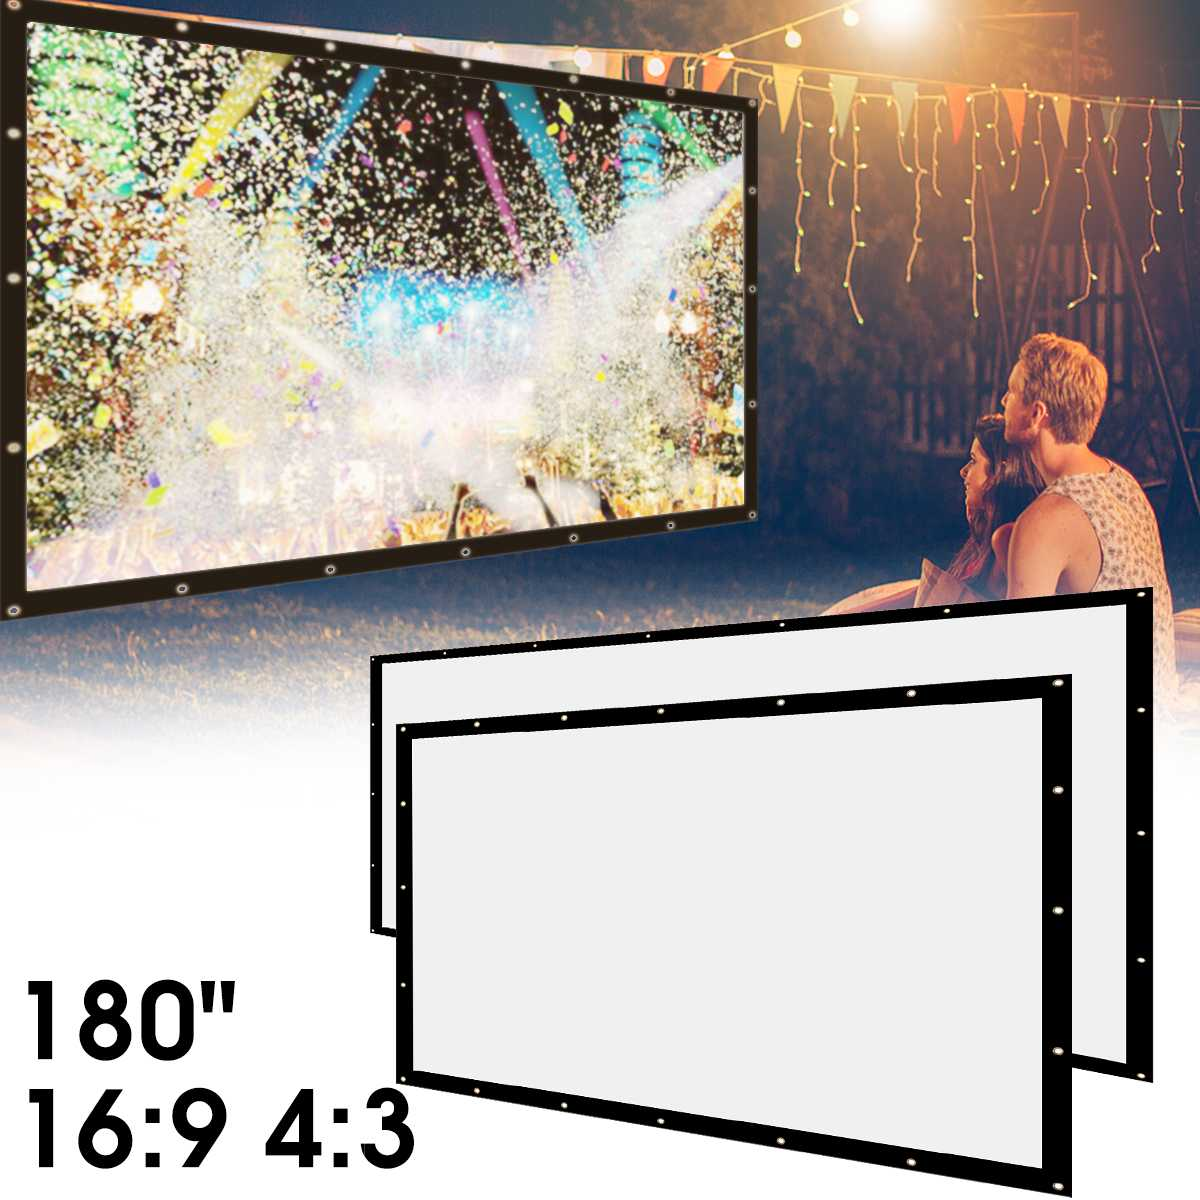 4:3 180 inch Portable Foldable Projection Screen 3D HD Home Theater Outdoor Cinema Canvas LCD LED Projector Accessories newpal 150 inch projector screen 4 3 16 9 foldable projector screen for outdoor and home cinema movies